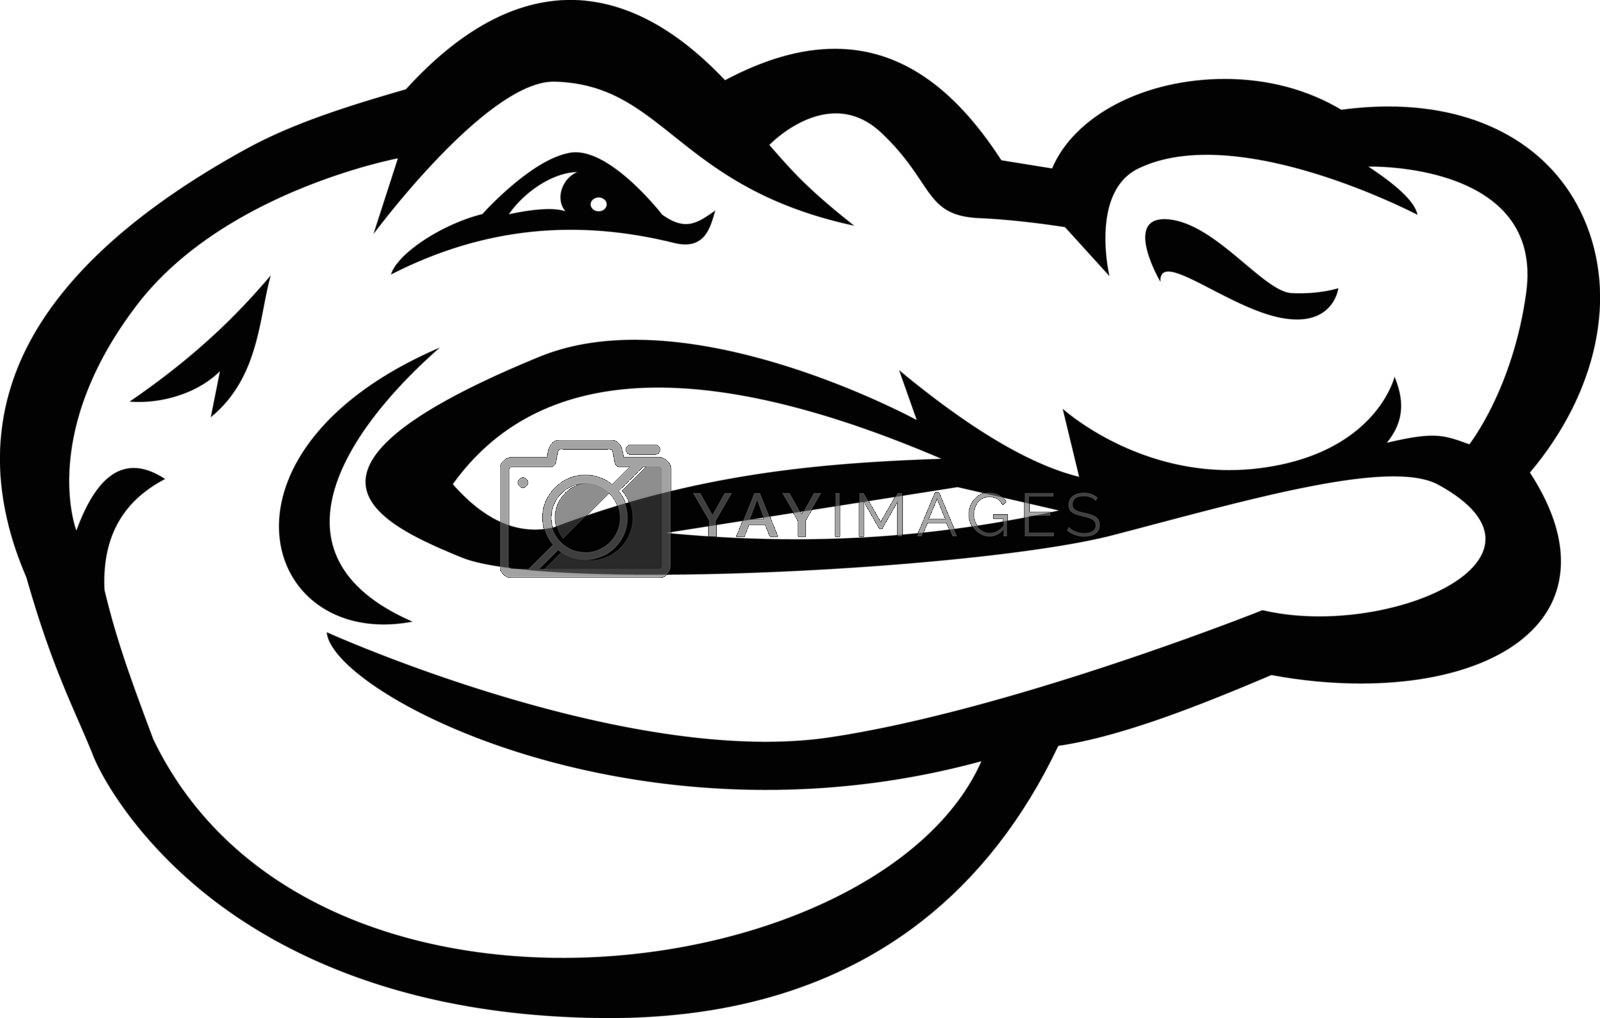 Black and white mascot illustration of head of an alligator, gator, crocodile or croc viewed and looking from side on isolated background in retro style.